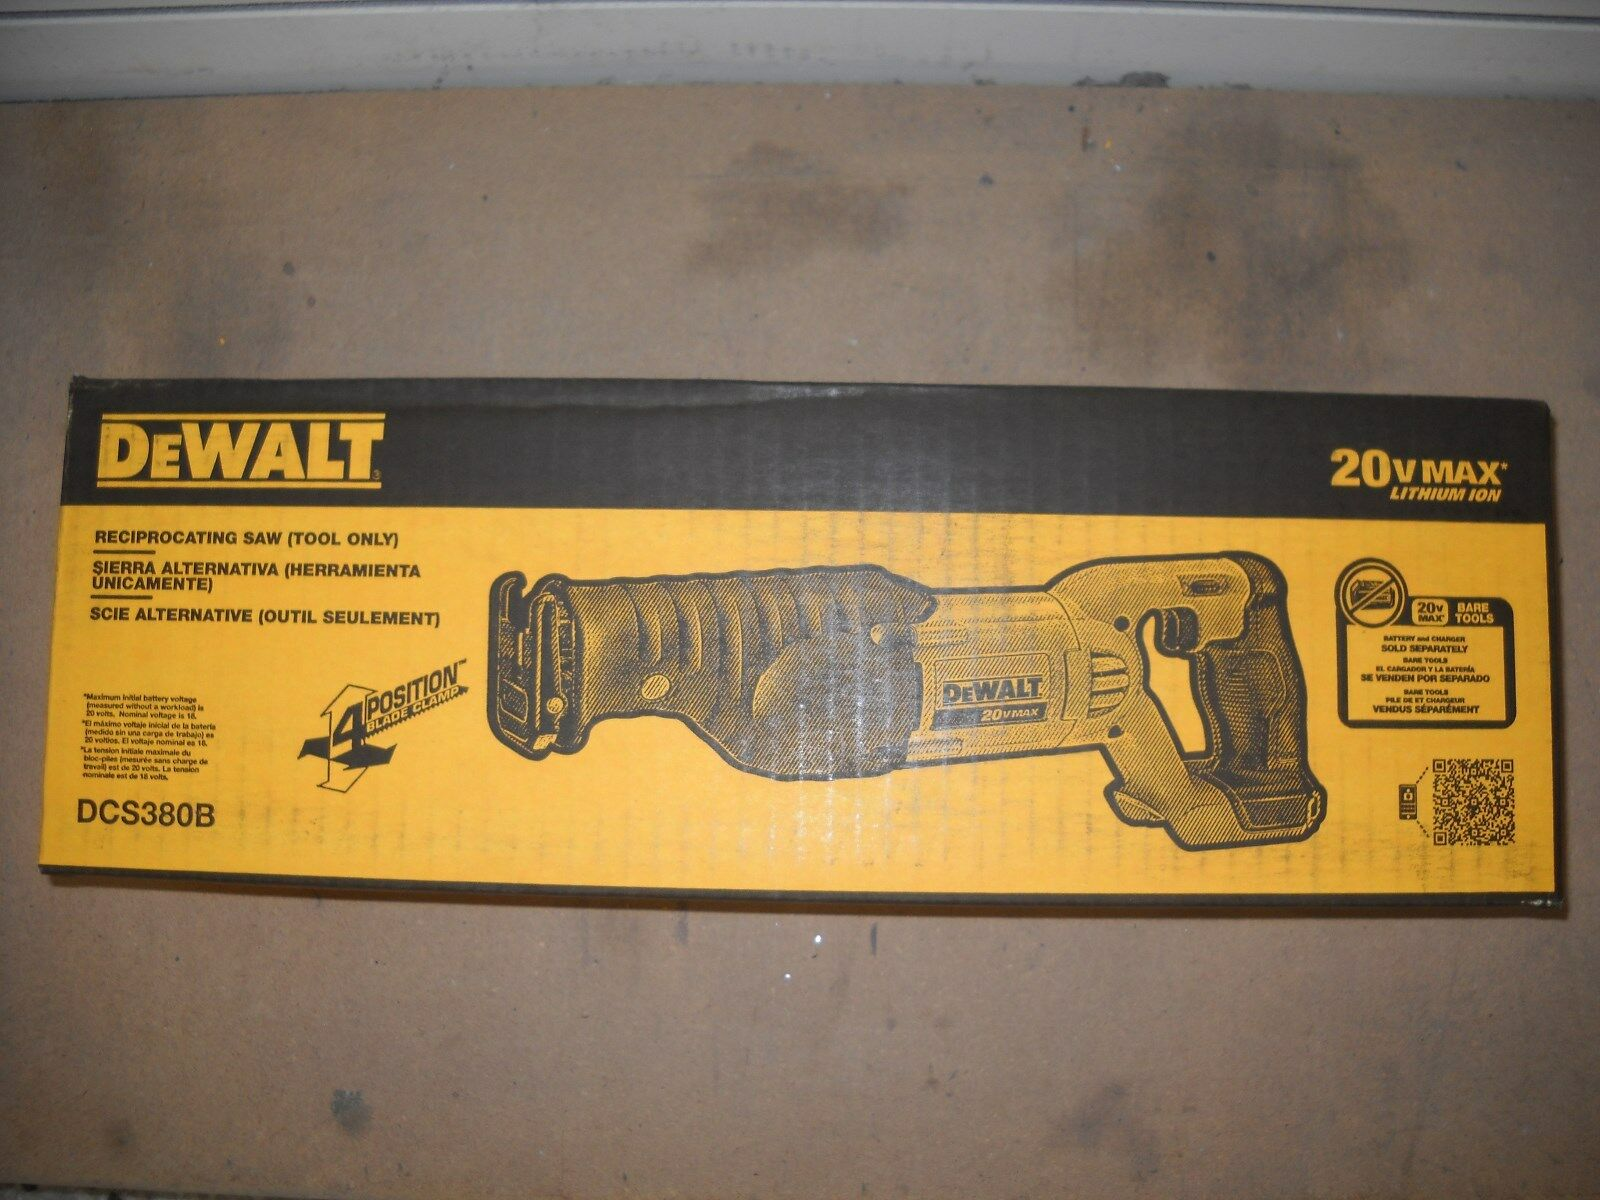 DEWALT DCS380B 20-Volt MAX Li-Ion Reciprocating Saw, Bare To